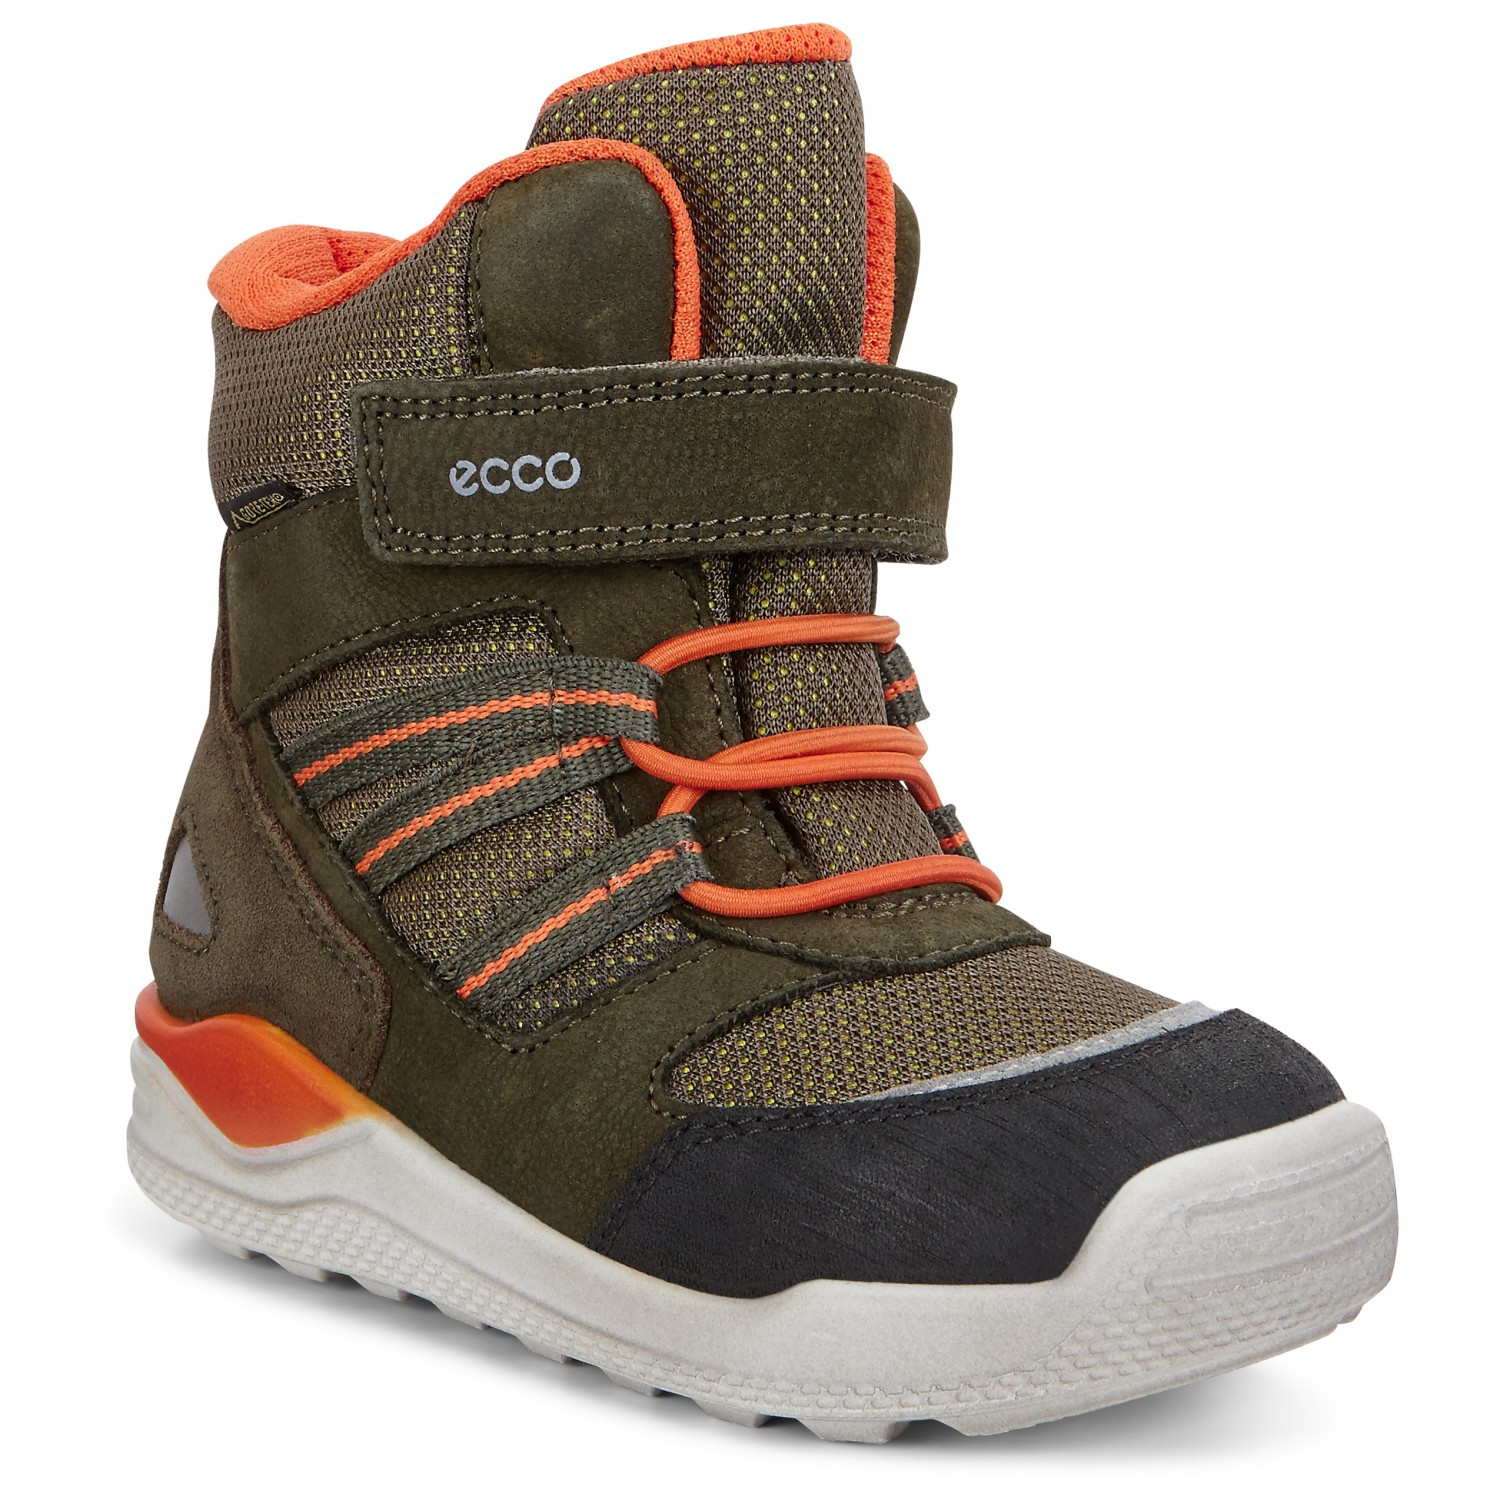 30cc89660723 Ecco - Kid s Urban Mini - Winter boots